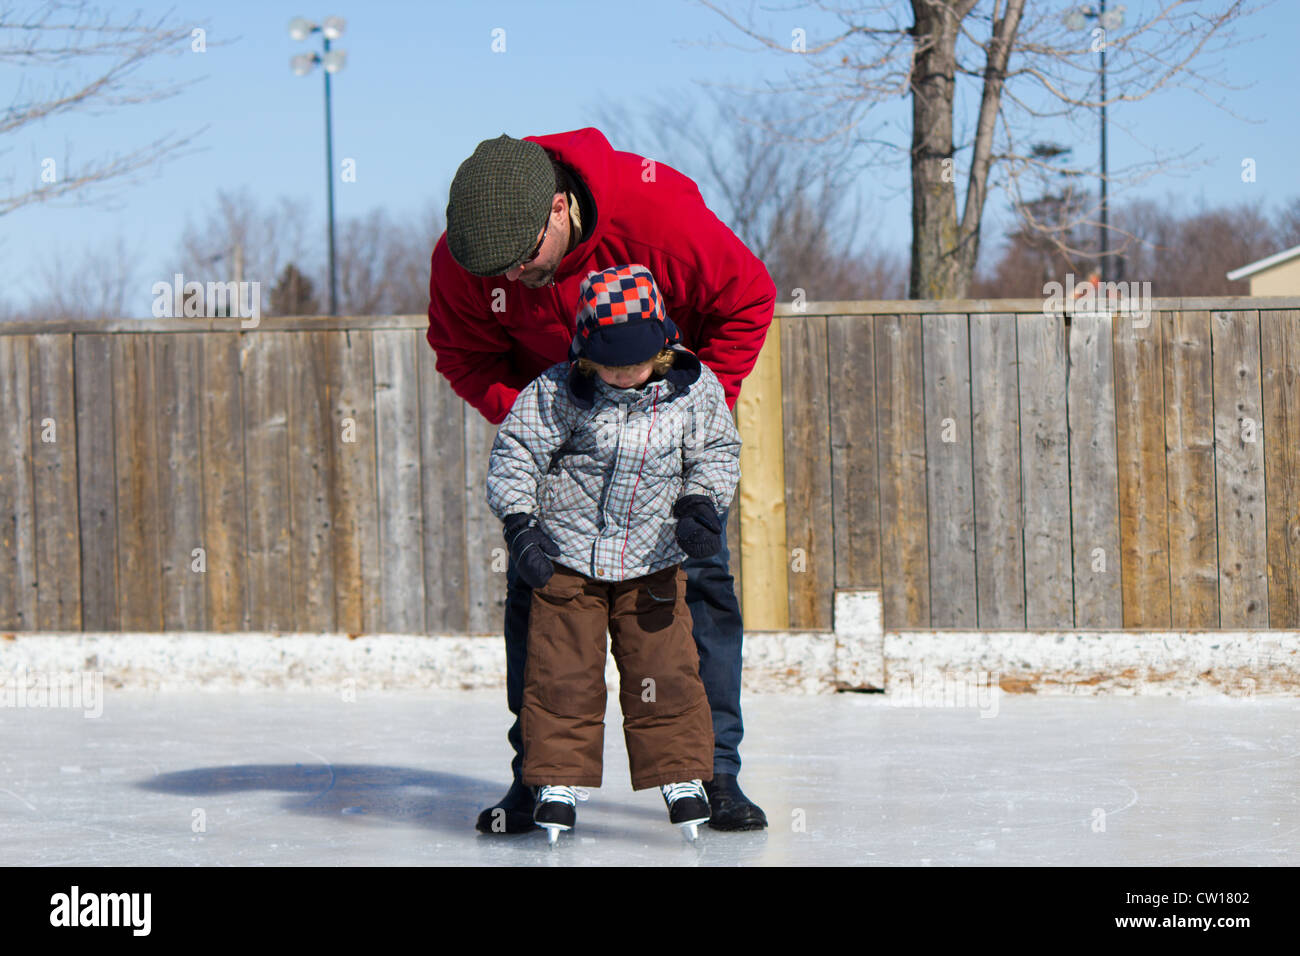 Father Teaching Son How To Ice Skate At An Outdoor Skating Rink In Winter